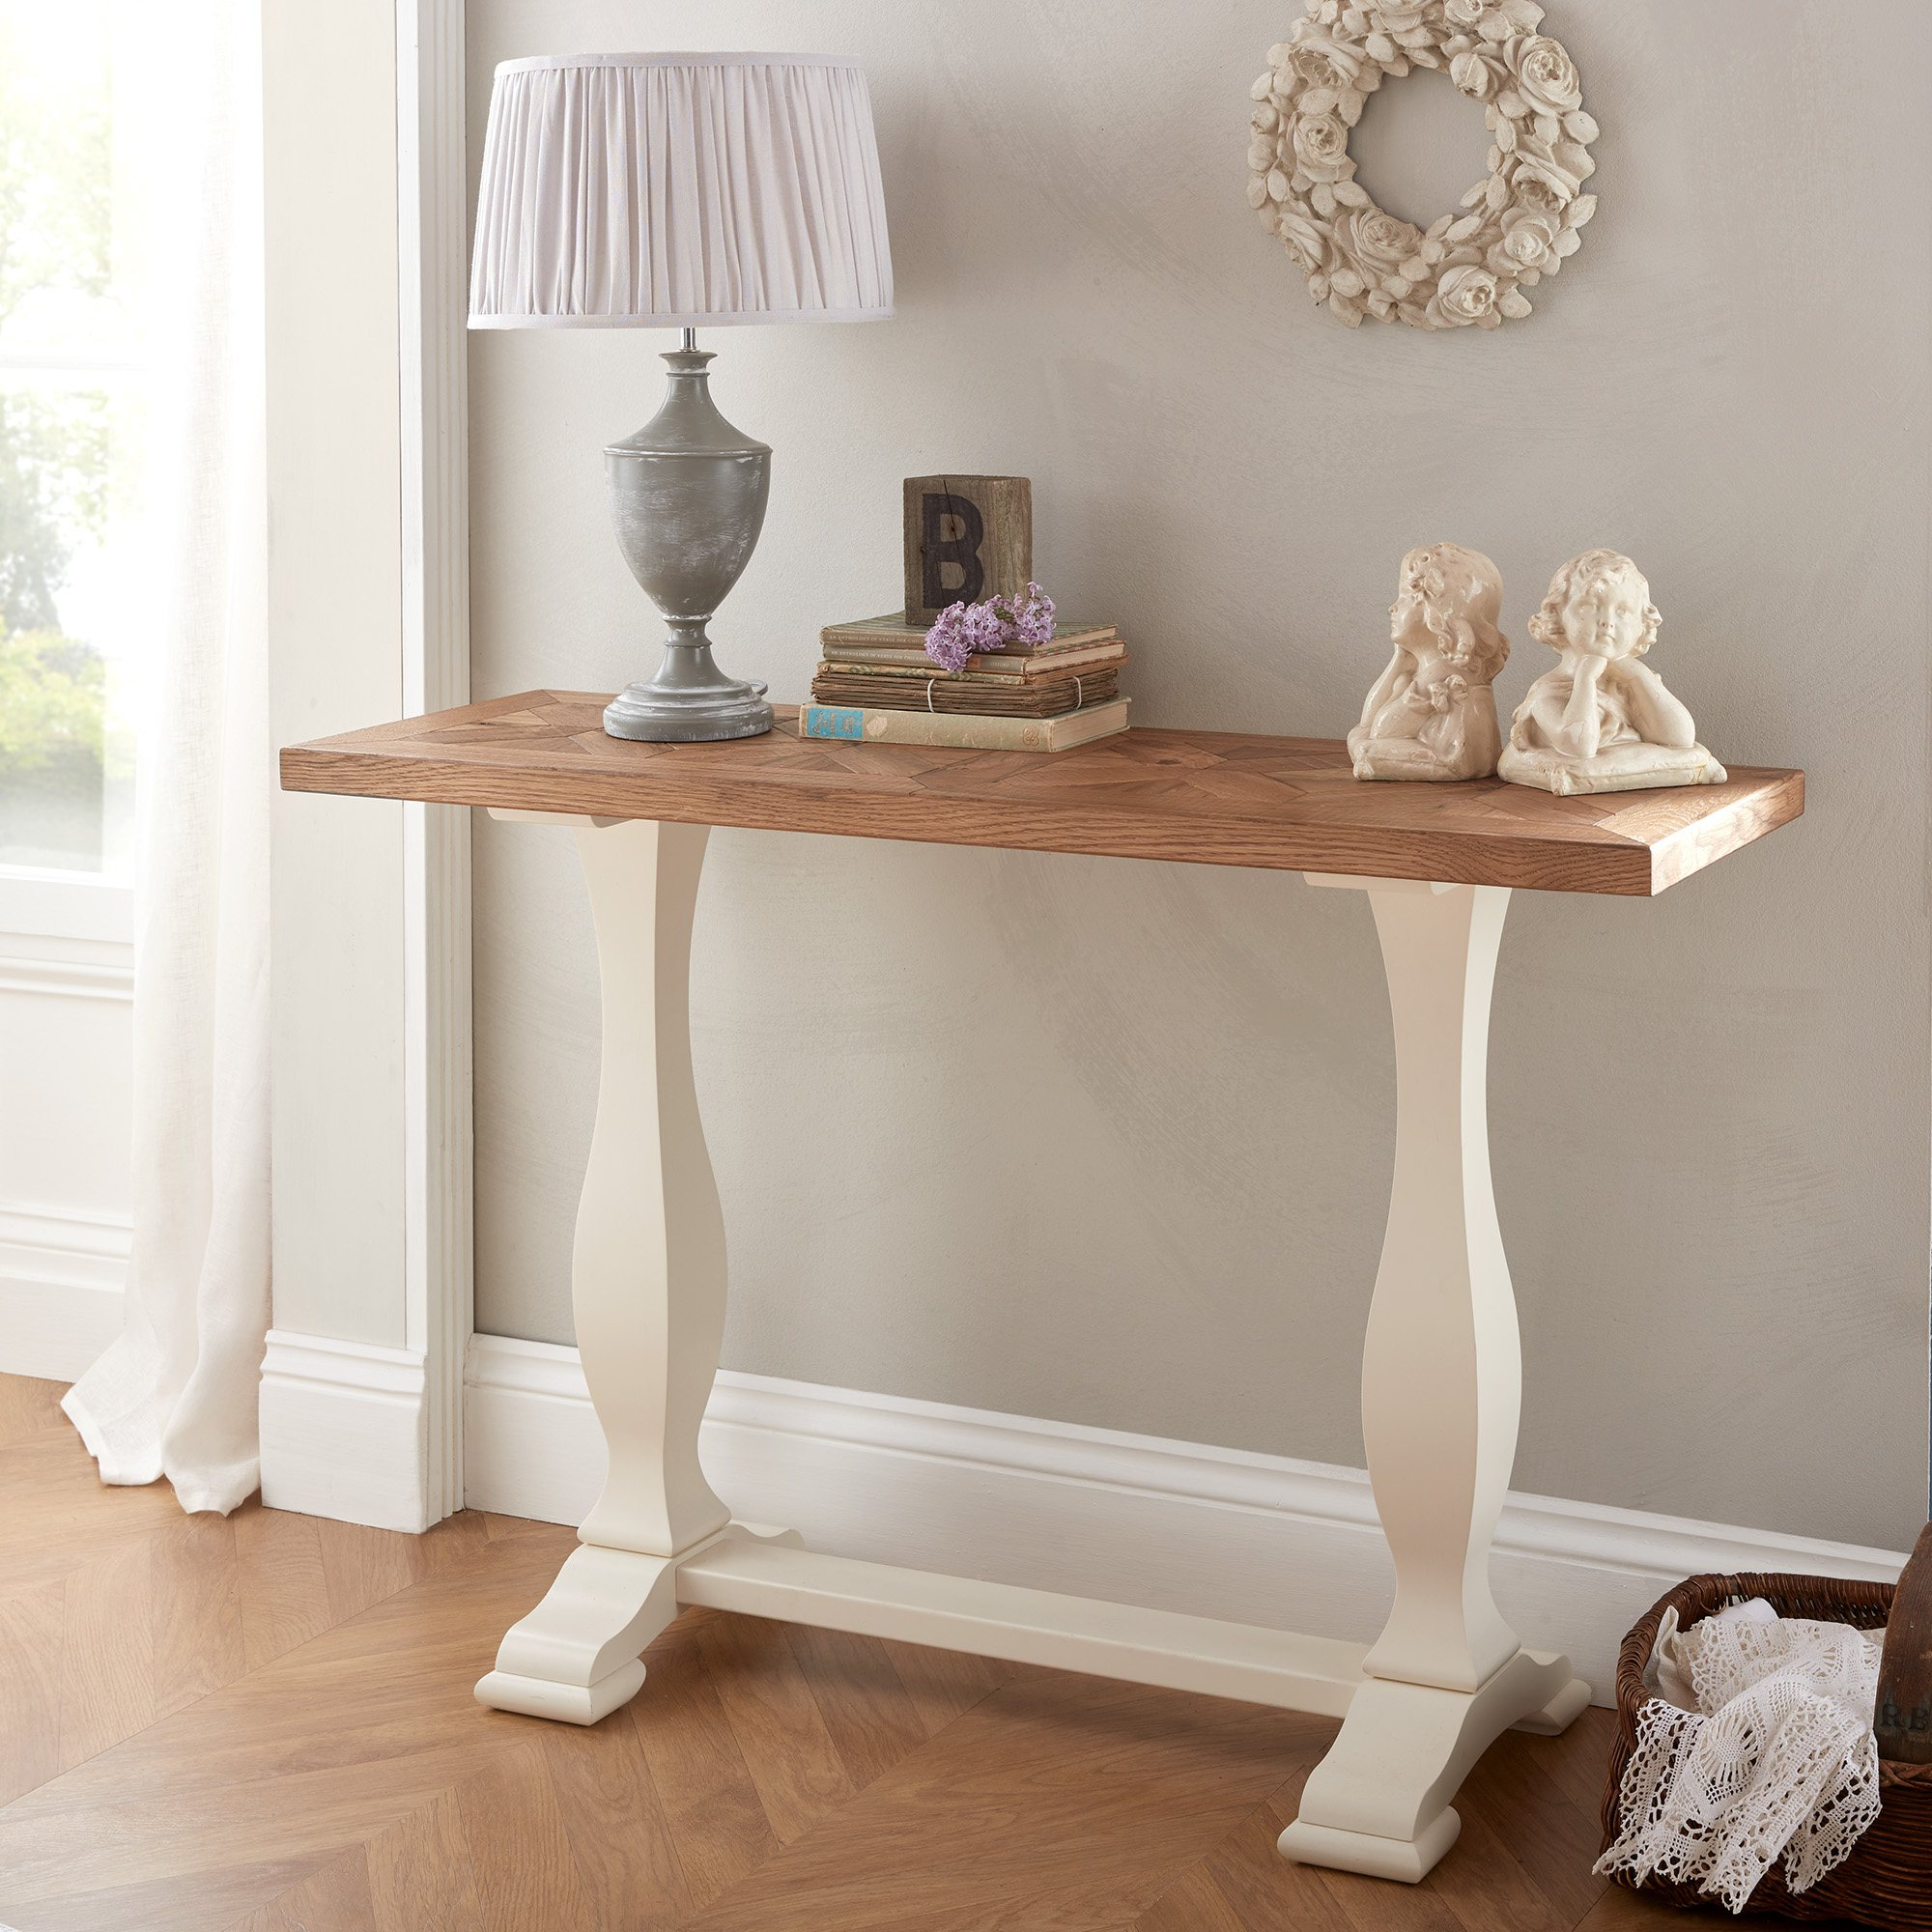 HIGHLAND CONSOLE TABLE - L118cm x D38cm x H79cm